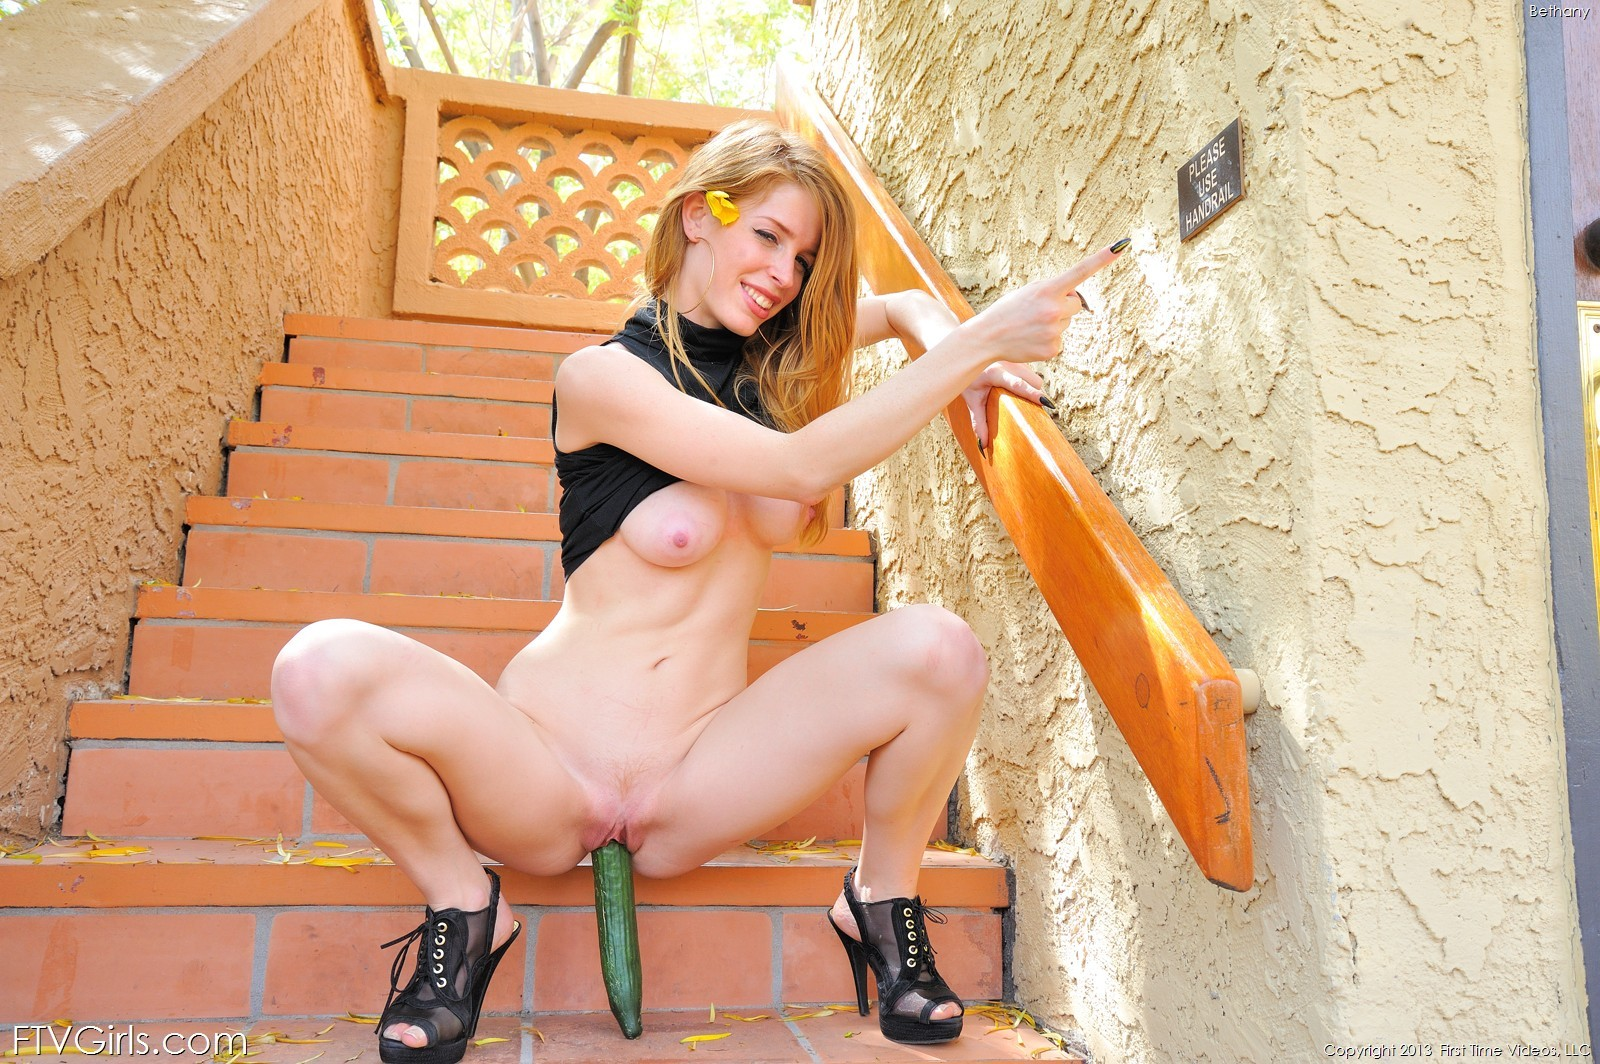 Bethanie skye outdoor black dress naked ftvgirls 22 RedBust